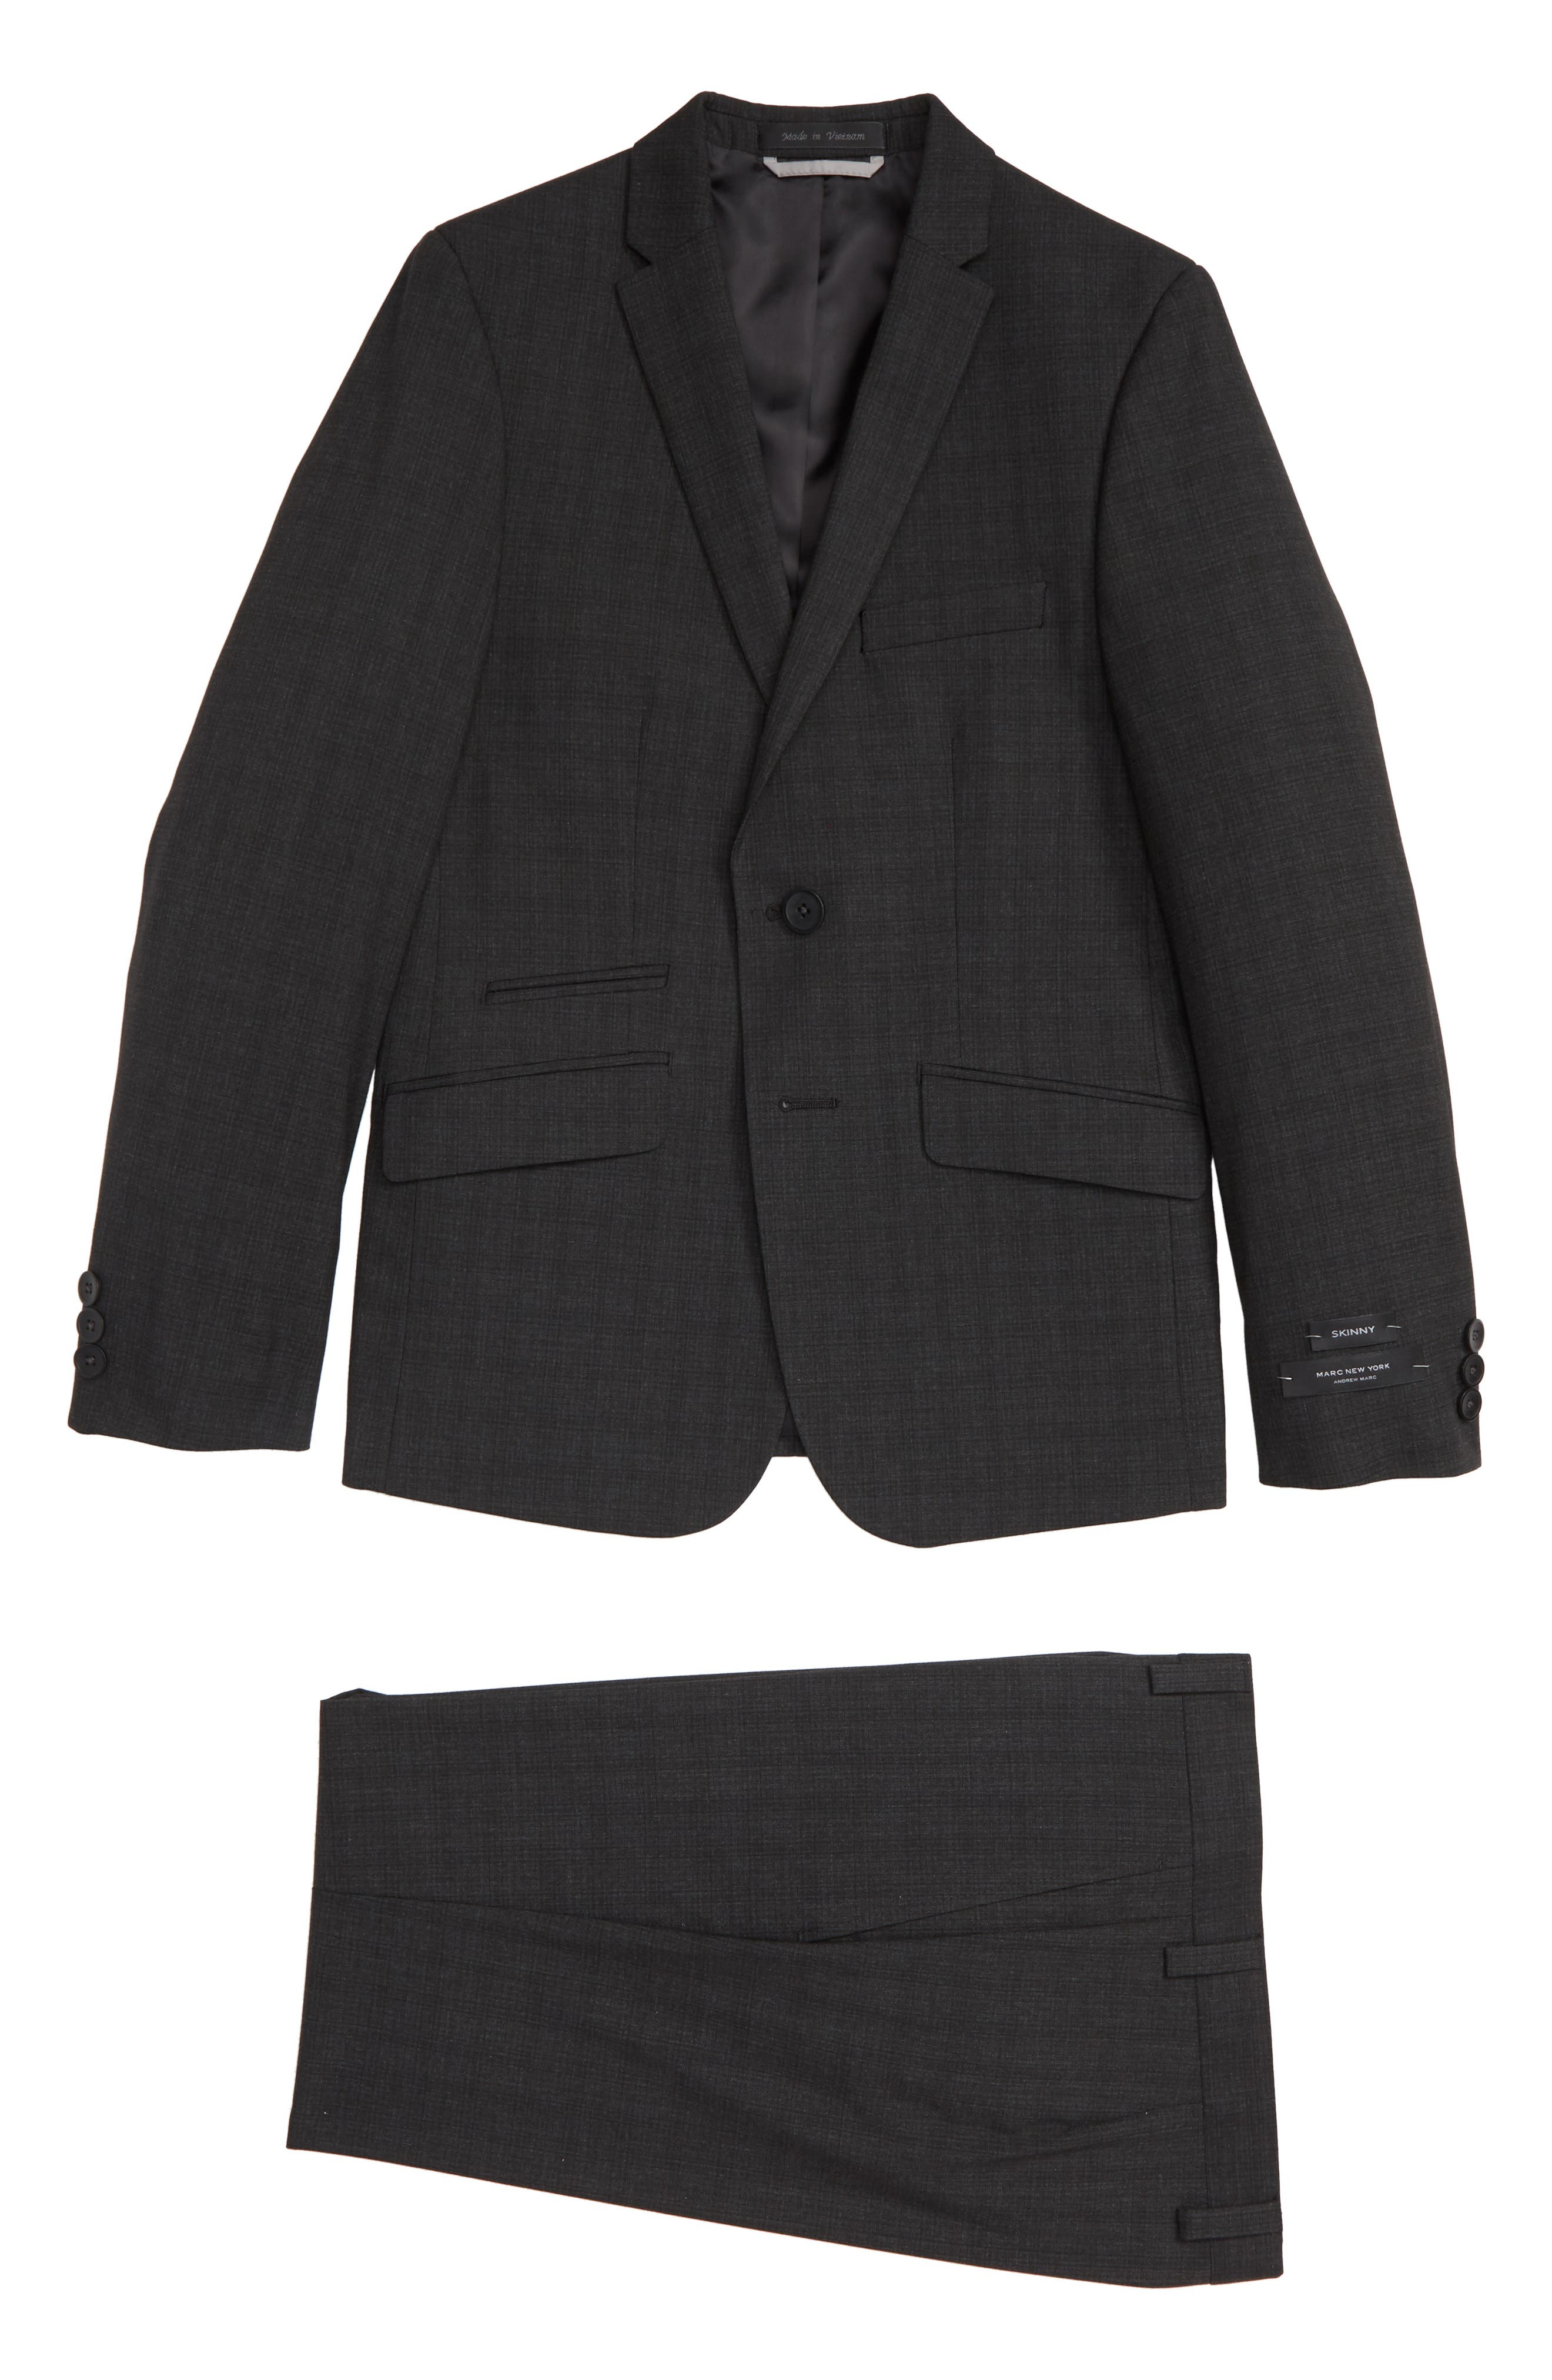 Check Suit,                             Main thumbnail 1, color,                             CHARCOAL/ BLACK